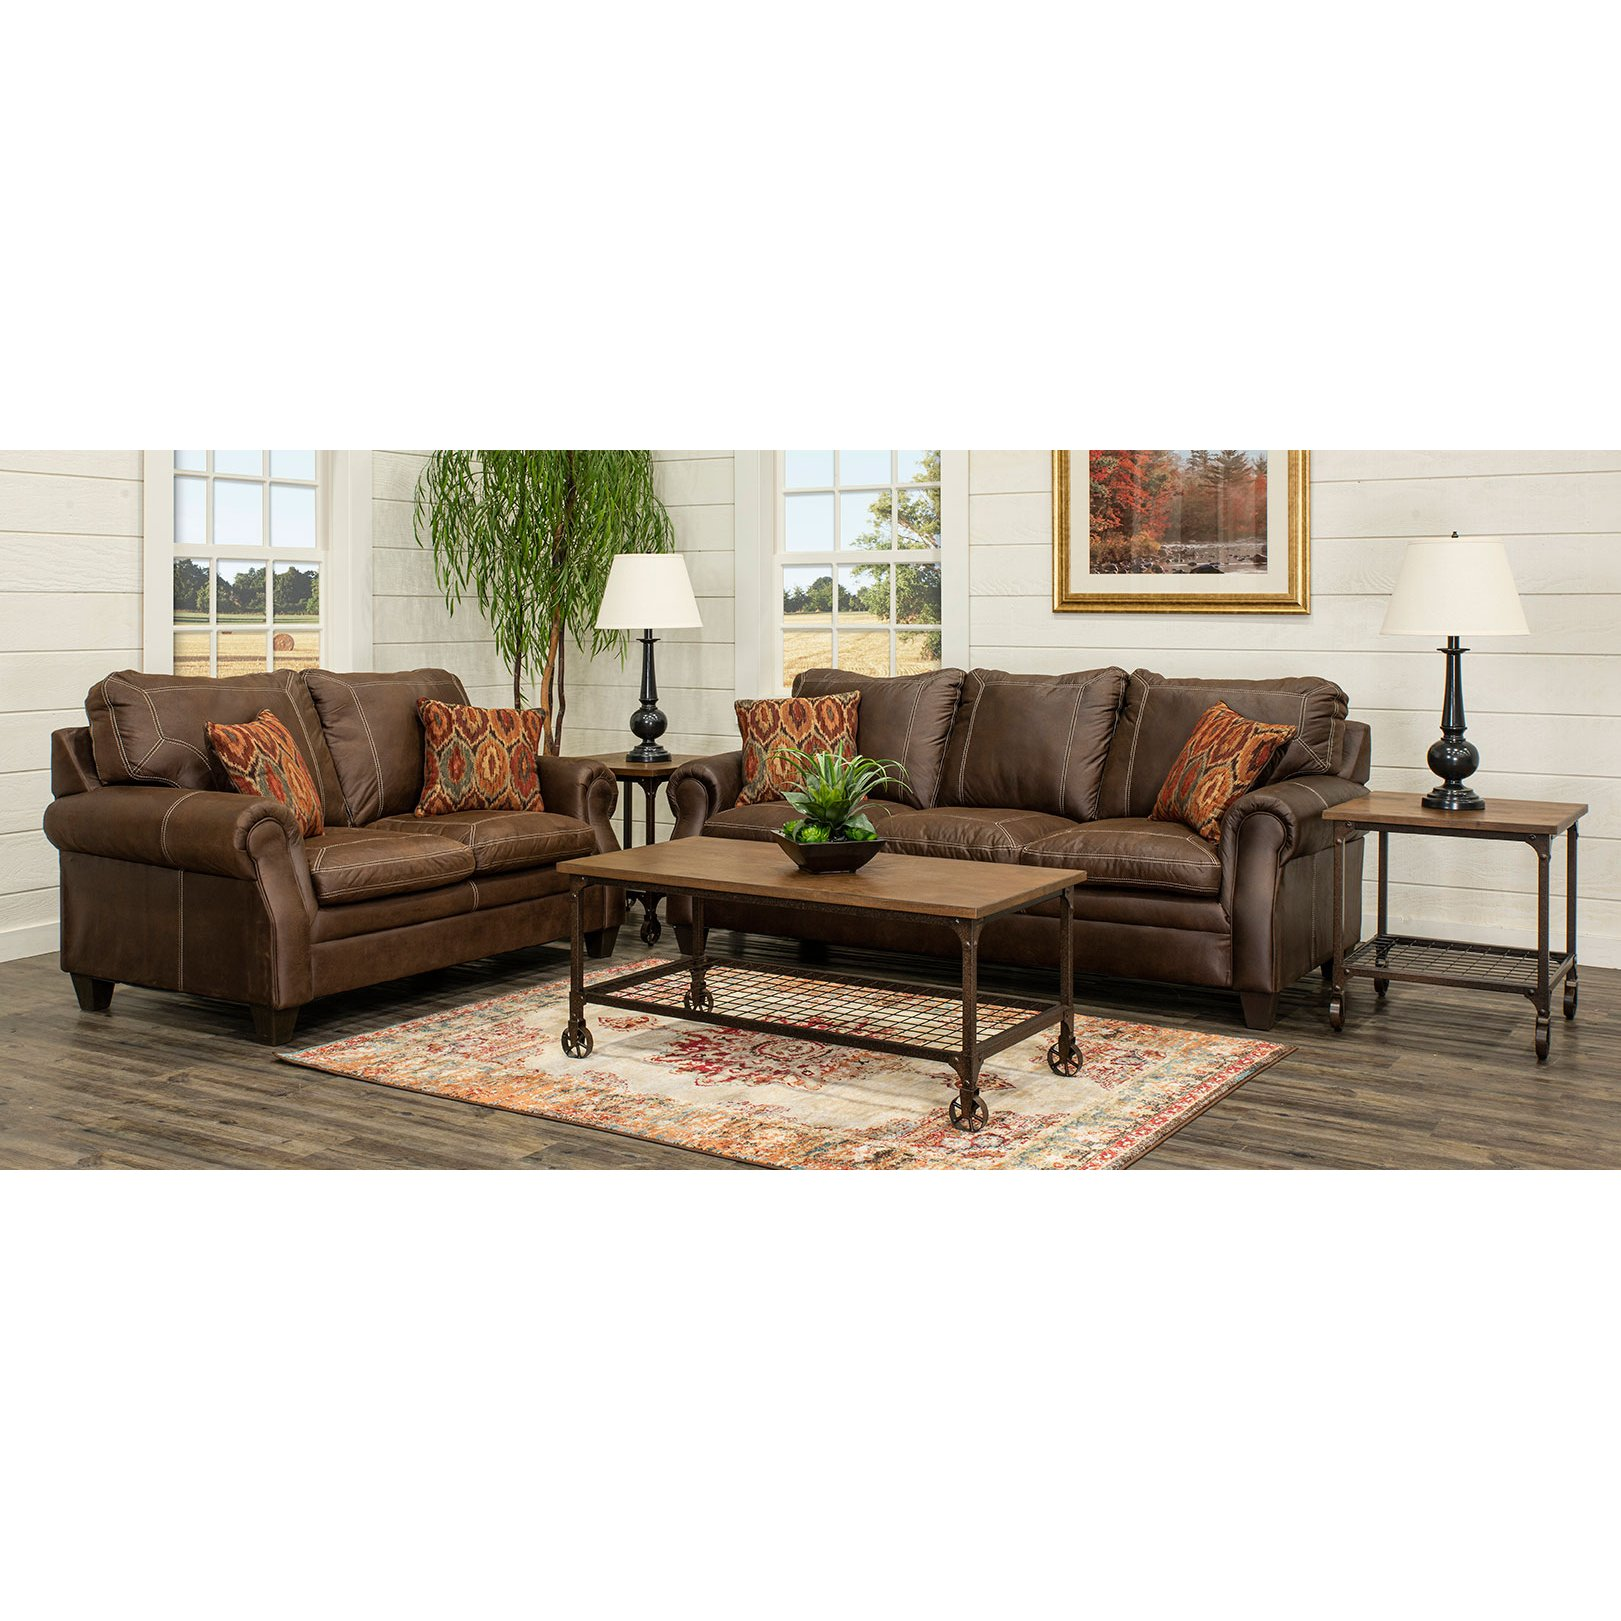 Classic Traditional Brown 7 Piece Living Room Set   Shiloh | RC Willey  Furniture Store